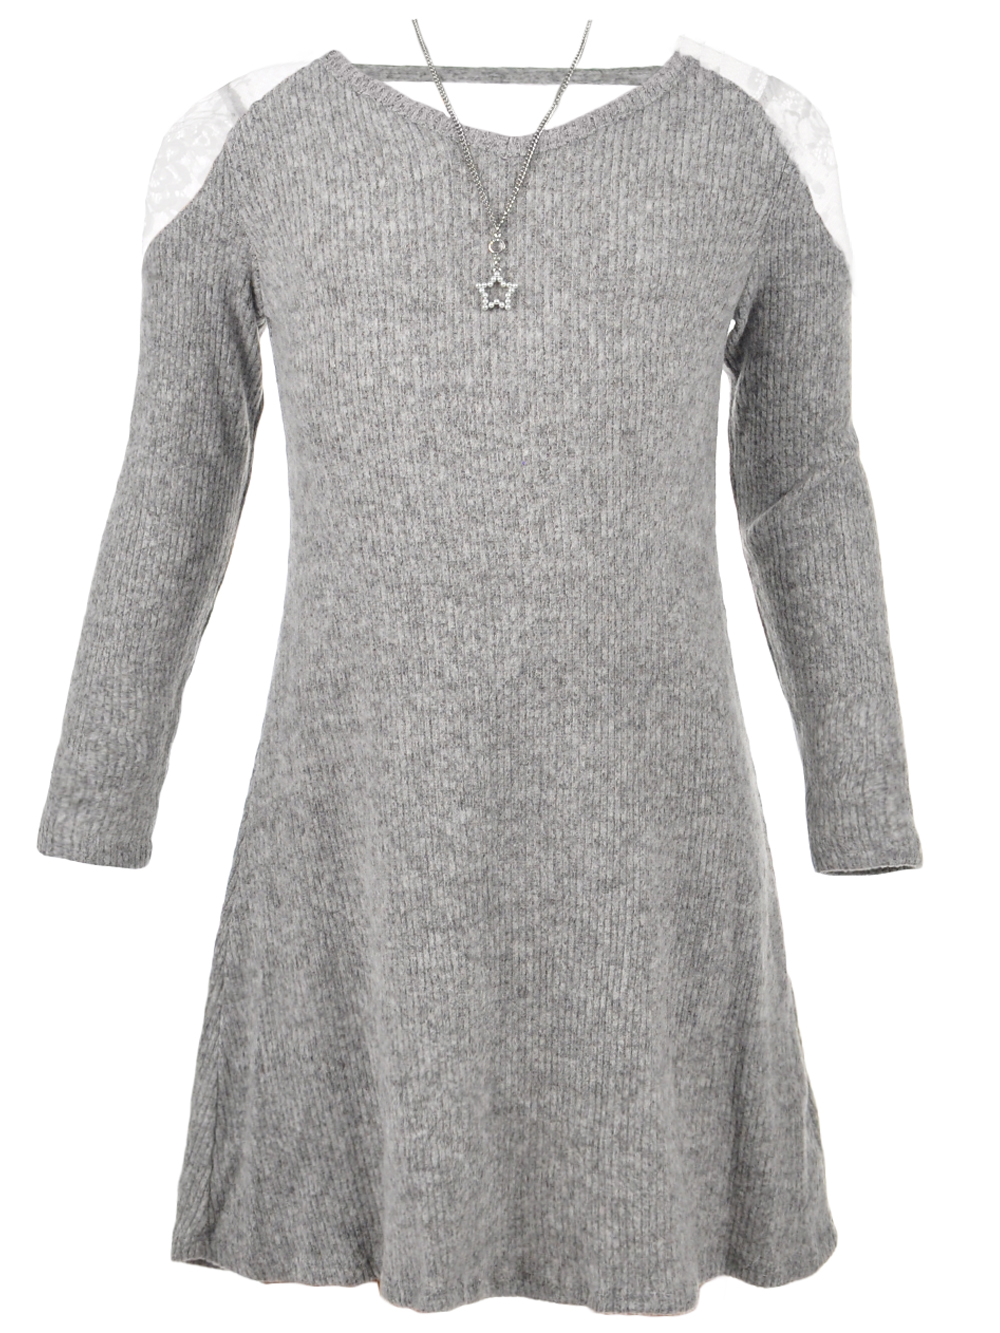 bb4c483684a65 Girls' Dress with Necklace by Amy Byer in Heather gray from Cookie's ...